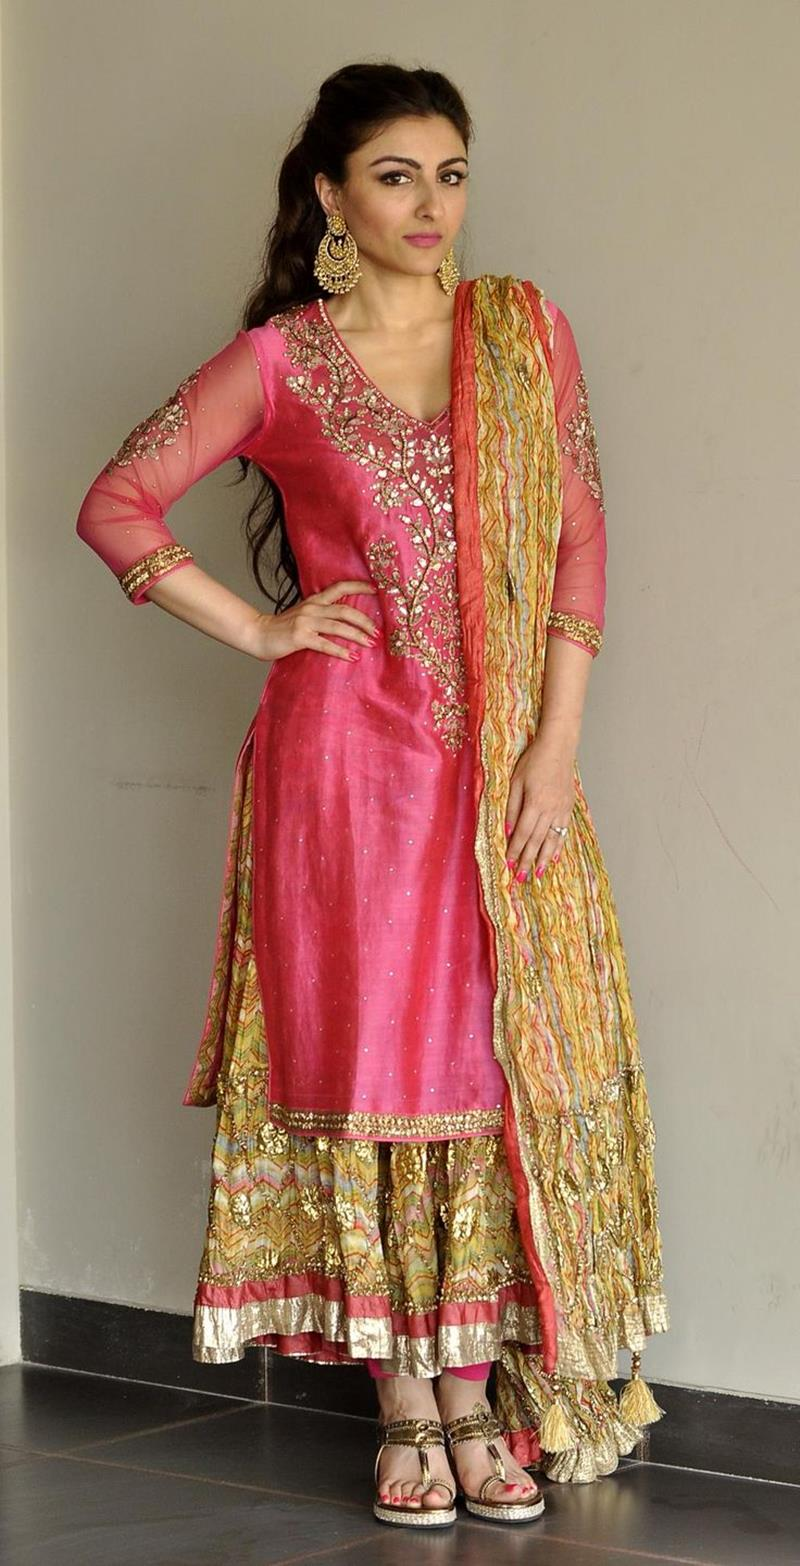 Vibrant Color Scheme And Traditional Mehndi Wear